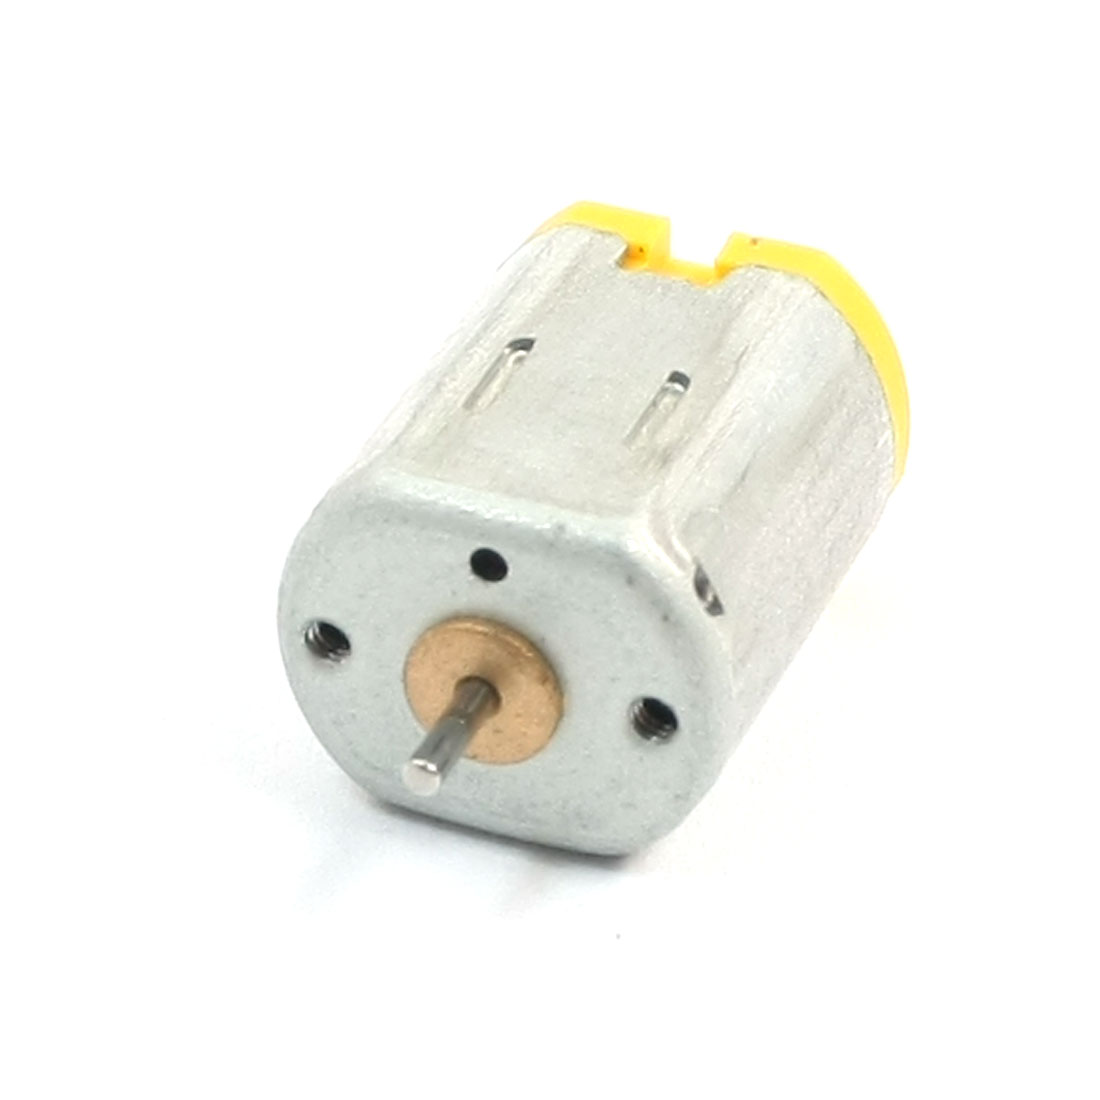 High-Torque-10000RPM-DC3V-Vibration-Motor-N20-Model-for-RC-Toys